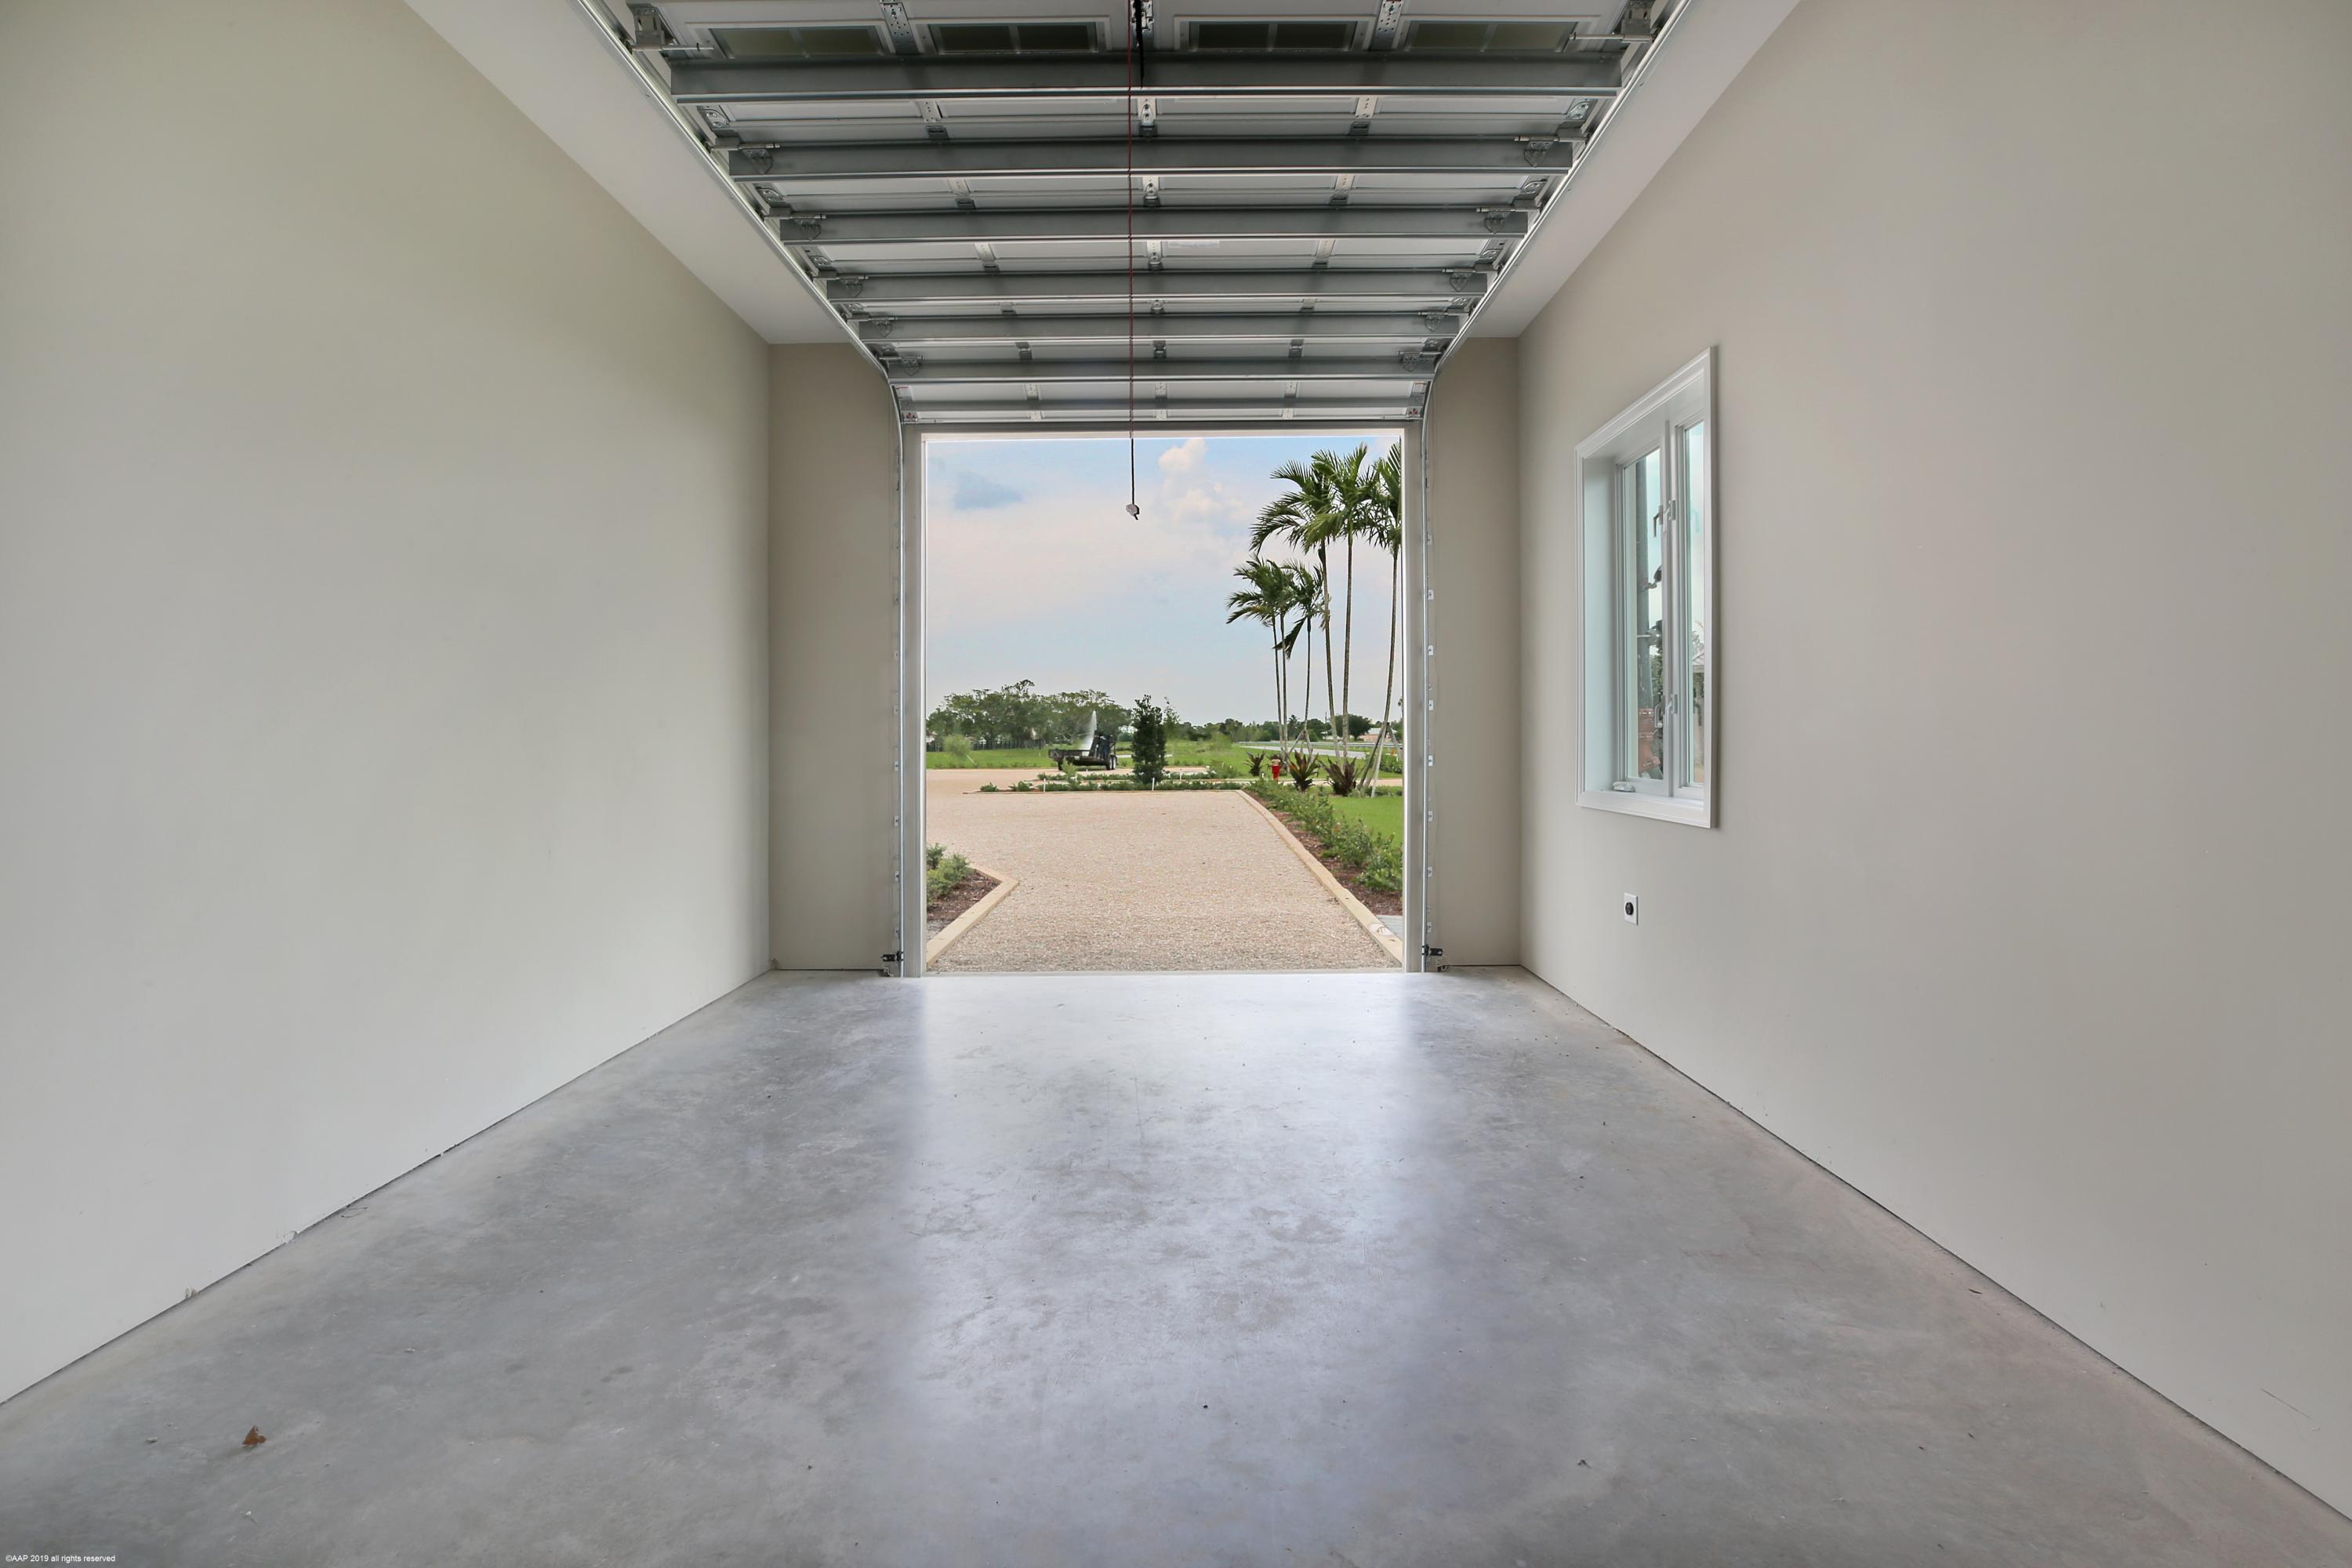 1 of 2 - attached one car garage bays